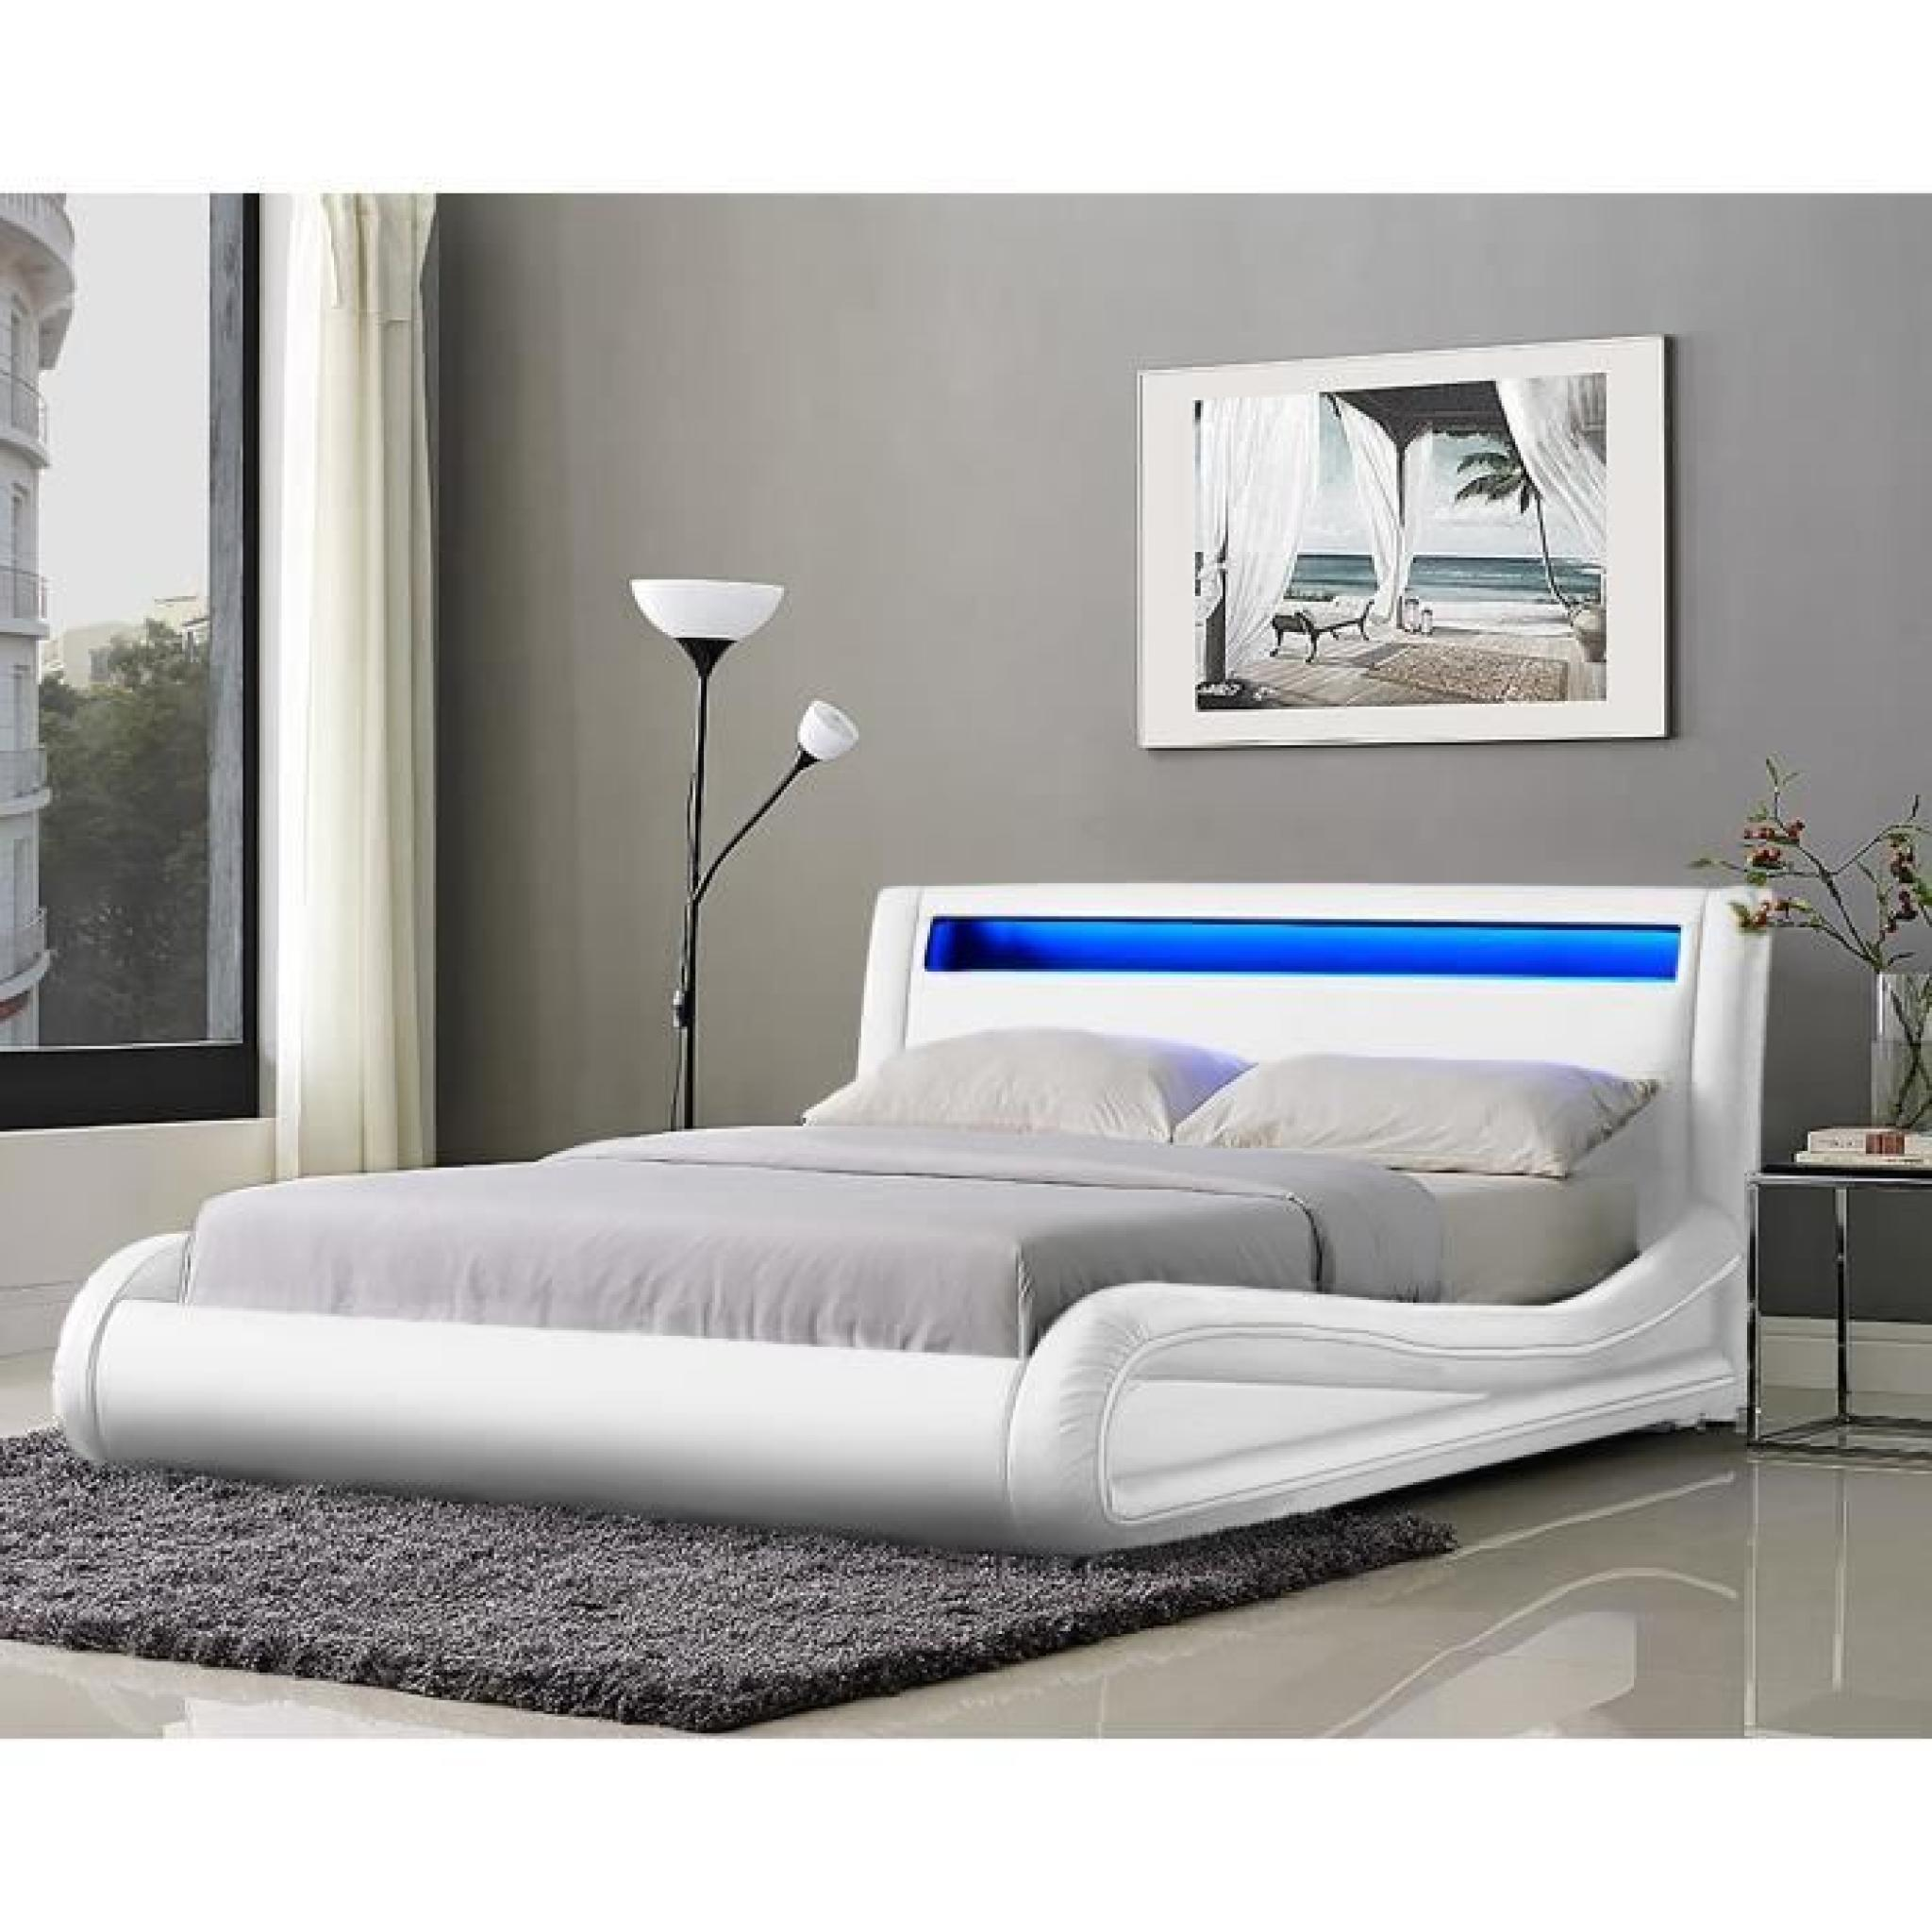 neptune lit adulte avec led 140x190cm blanc sommier inclus achat vente lit pas cher. Black Bedroom Furniture Sets. Home Design Ideas